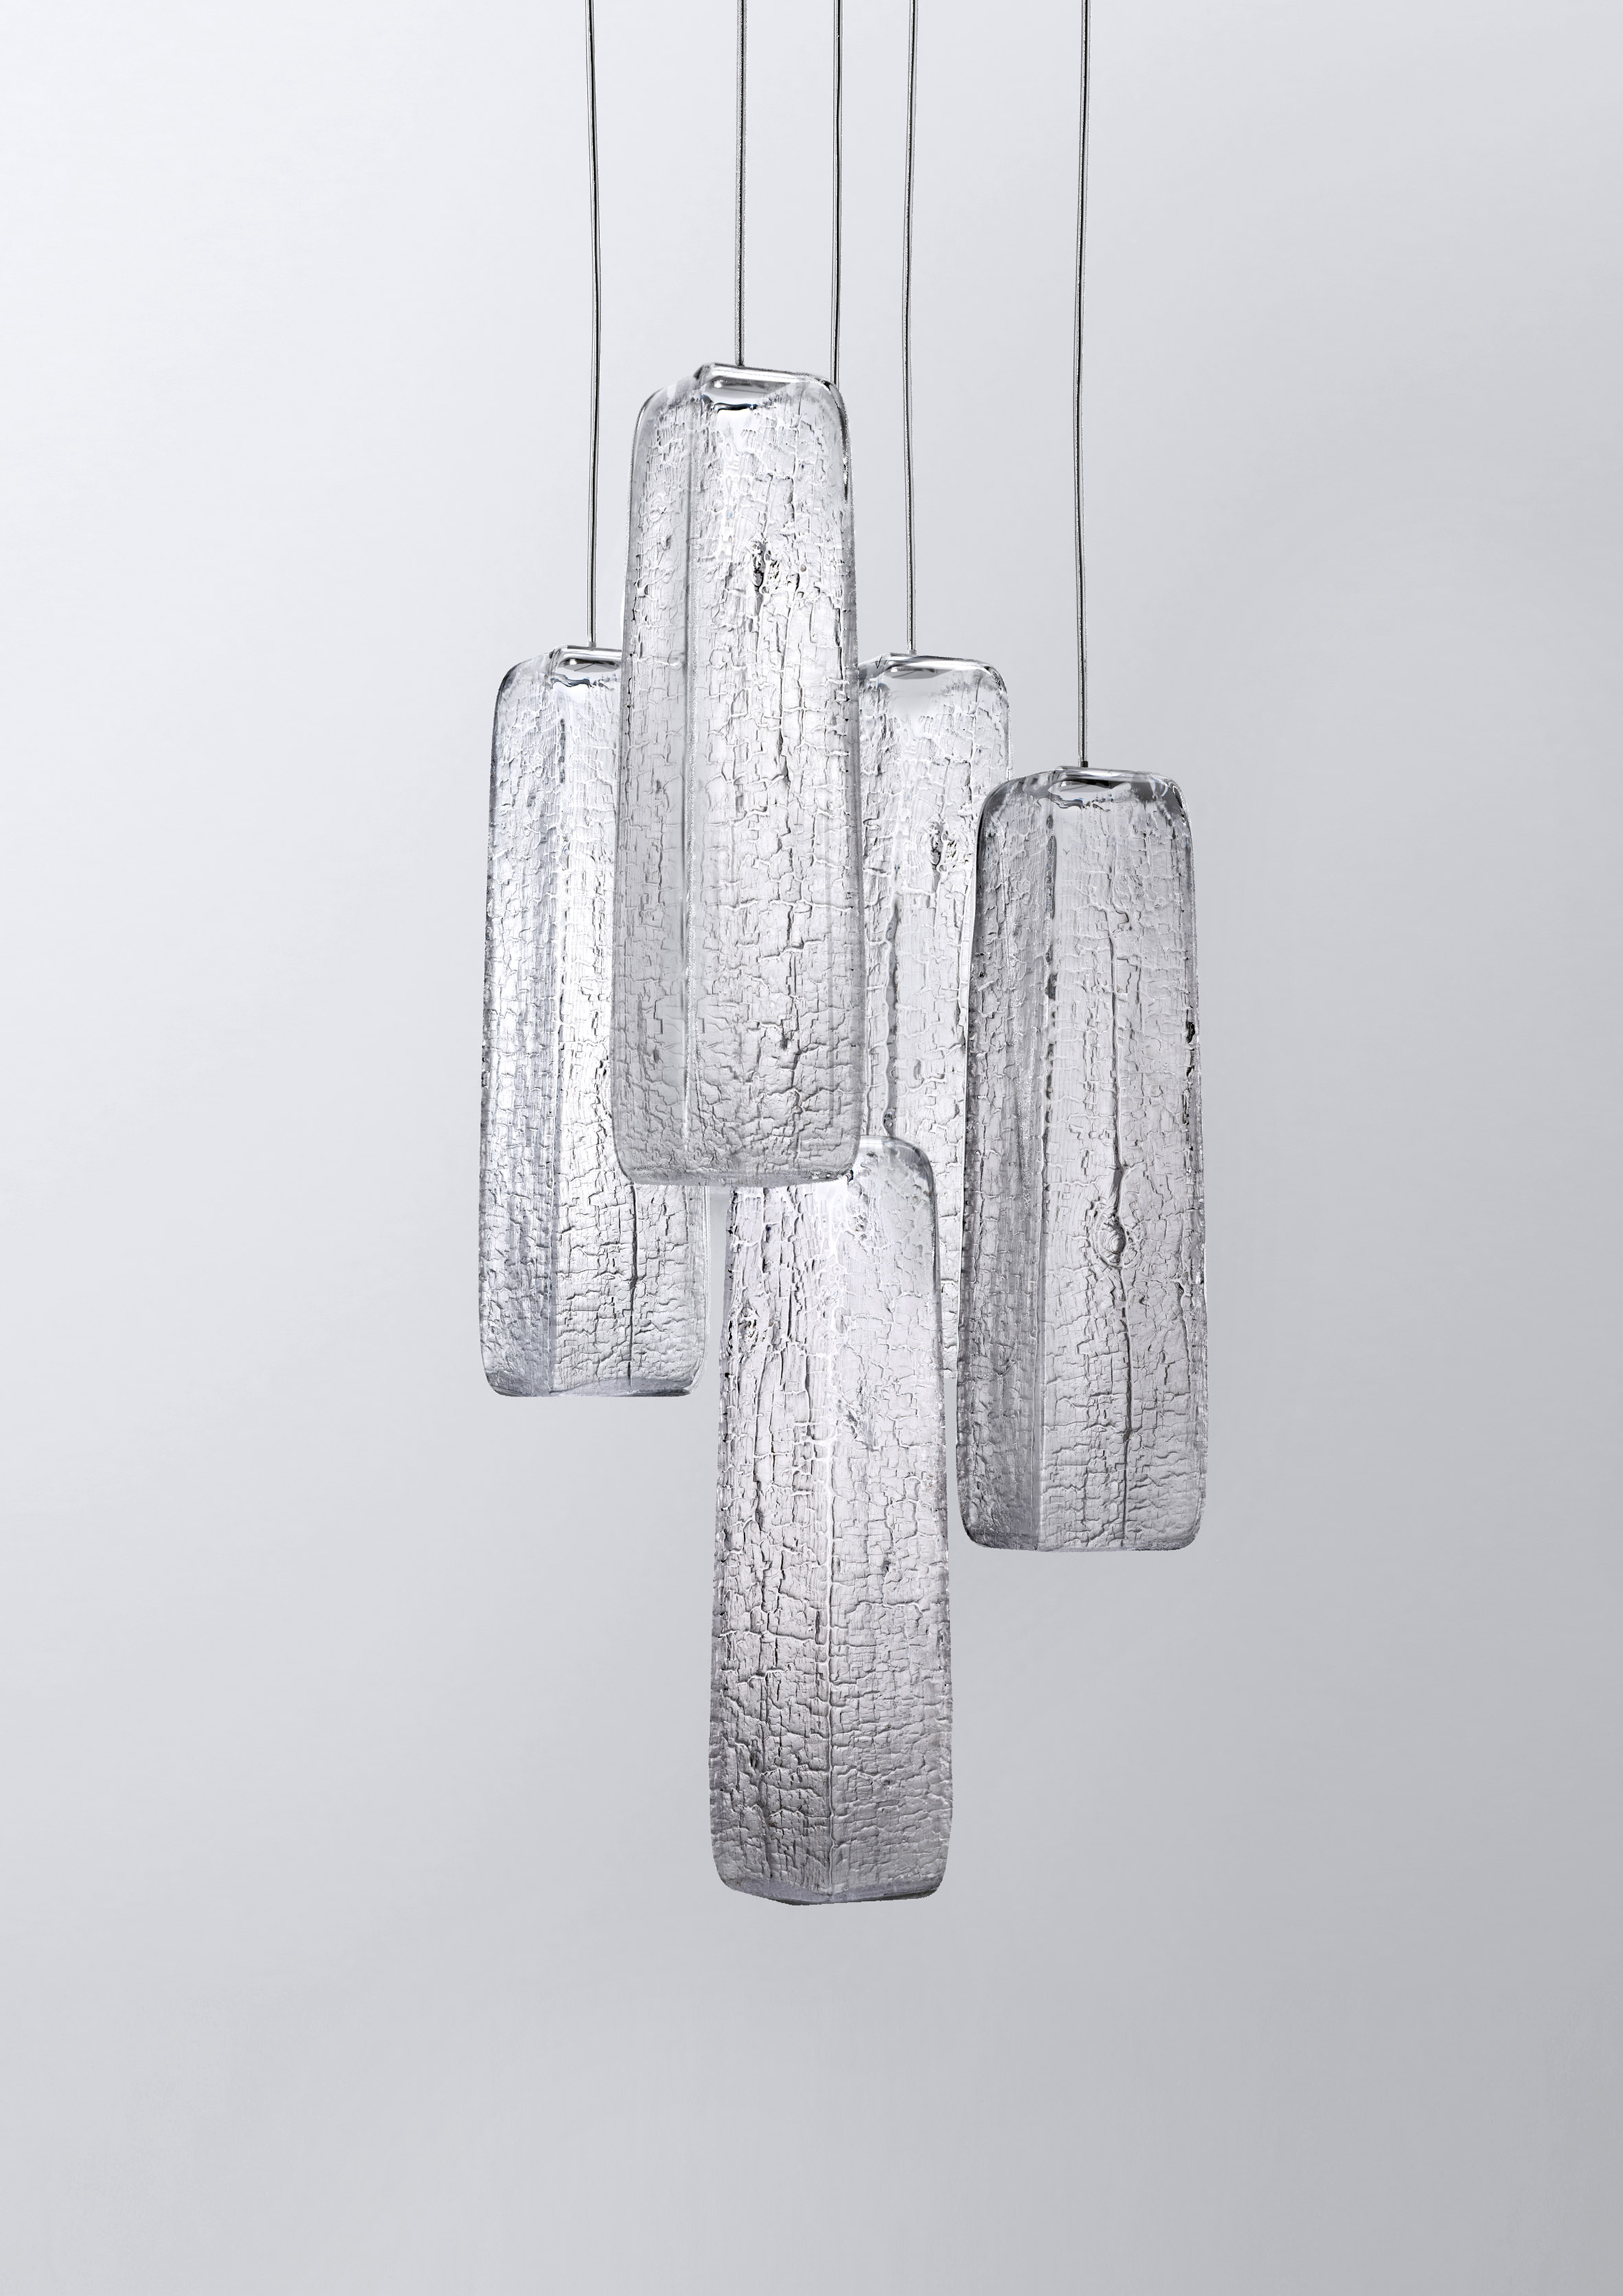 Kengo Kuma burns woods to create crackled glass lighting for Lasvit